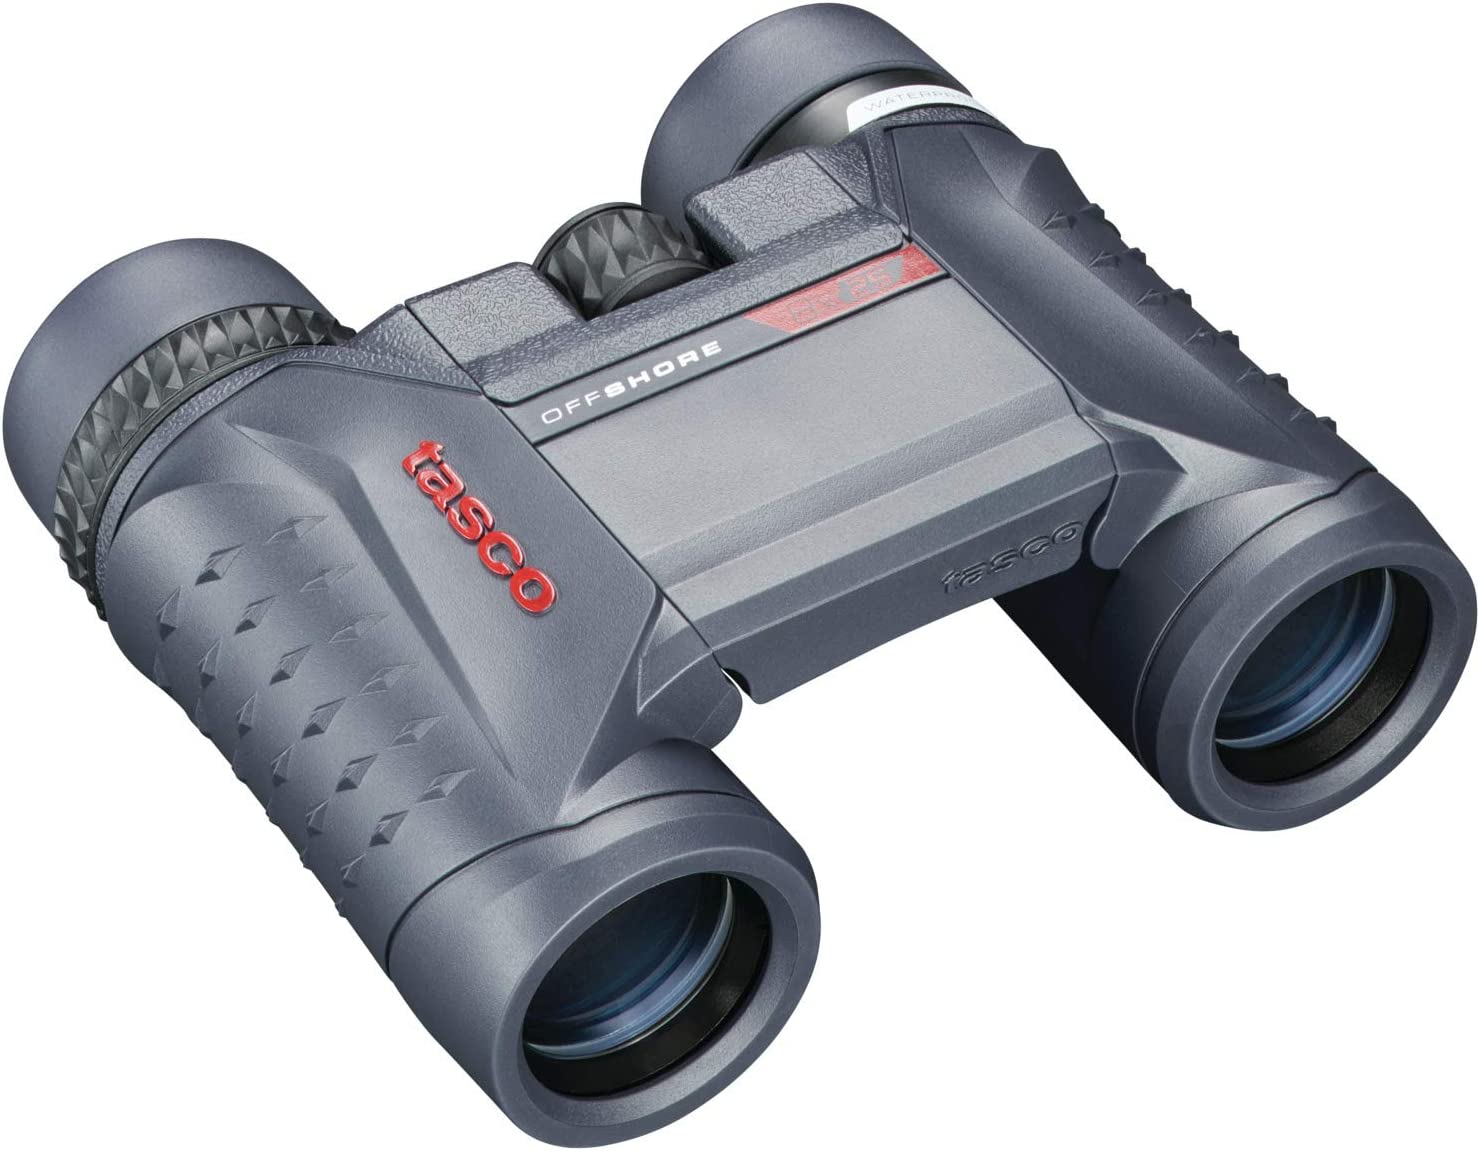 TASCO Offshore Sale item We OFFer at cheap prices Blue Binoculars